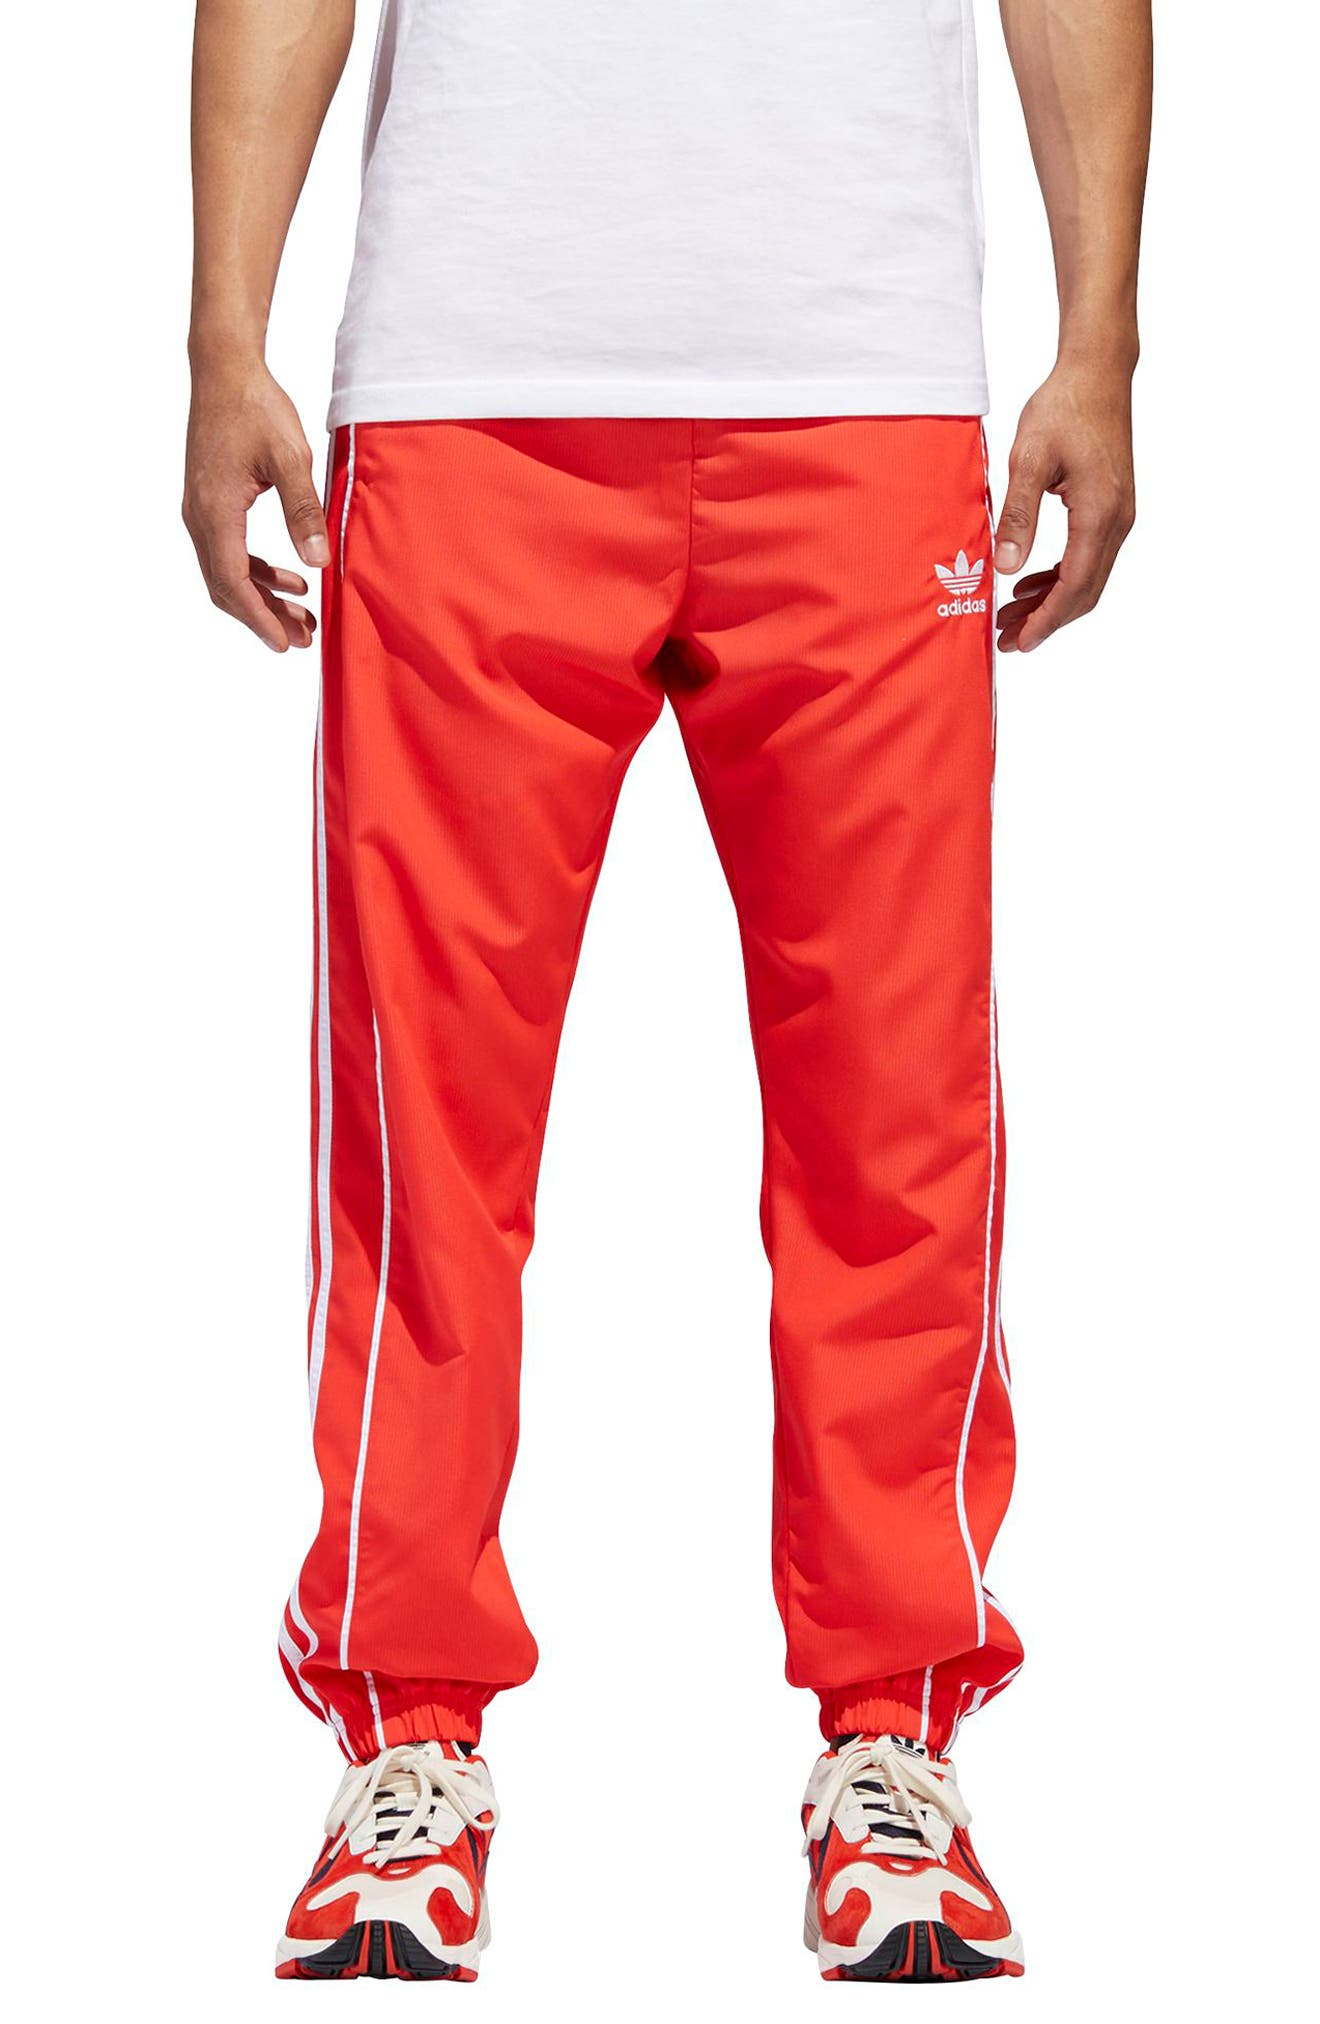 Authentics Ripstop Track Pants,                             Main thumbnail 1, color,                             HI-RES RED/ WHITE